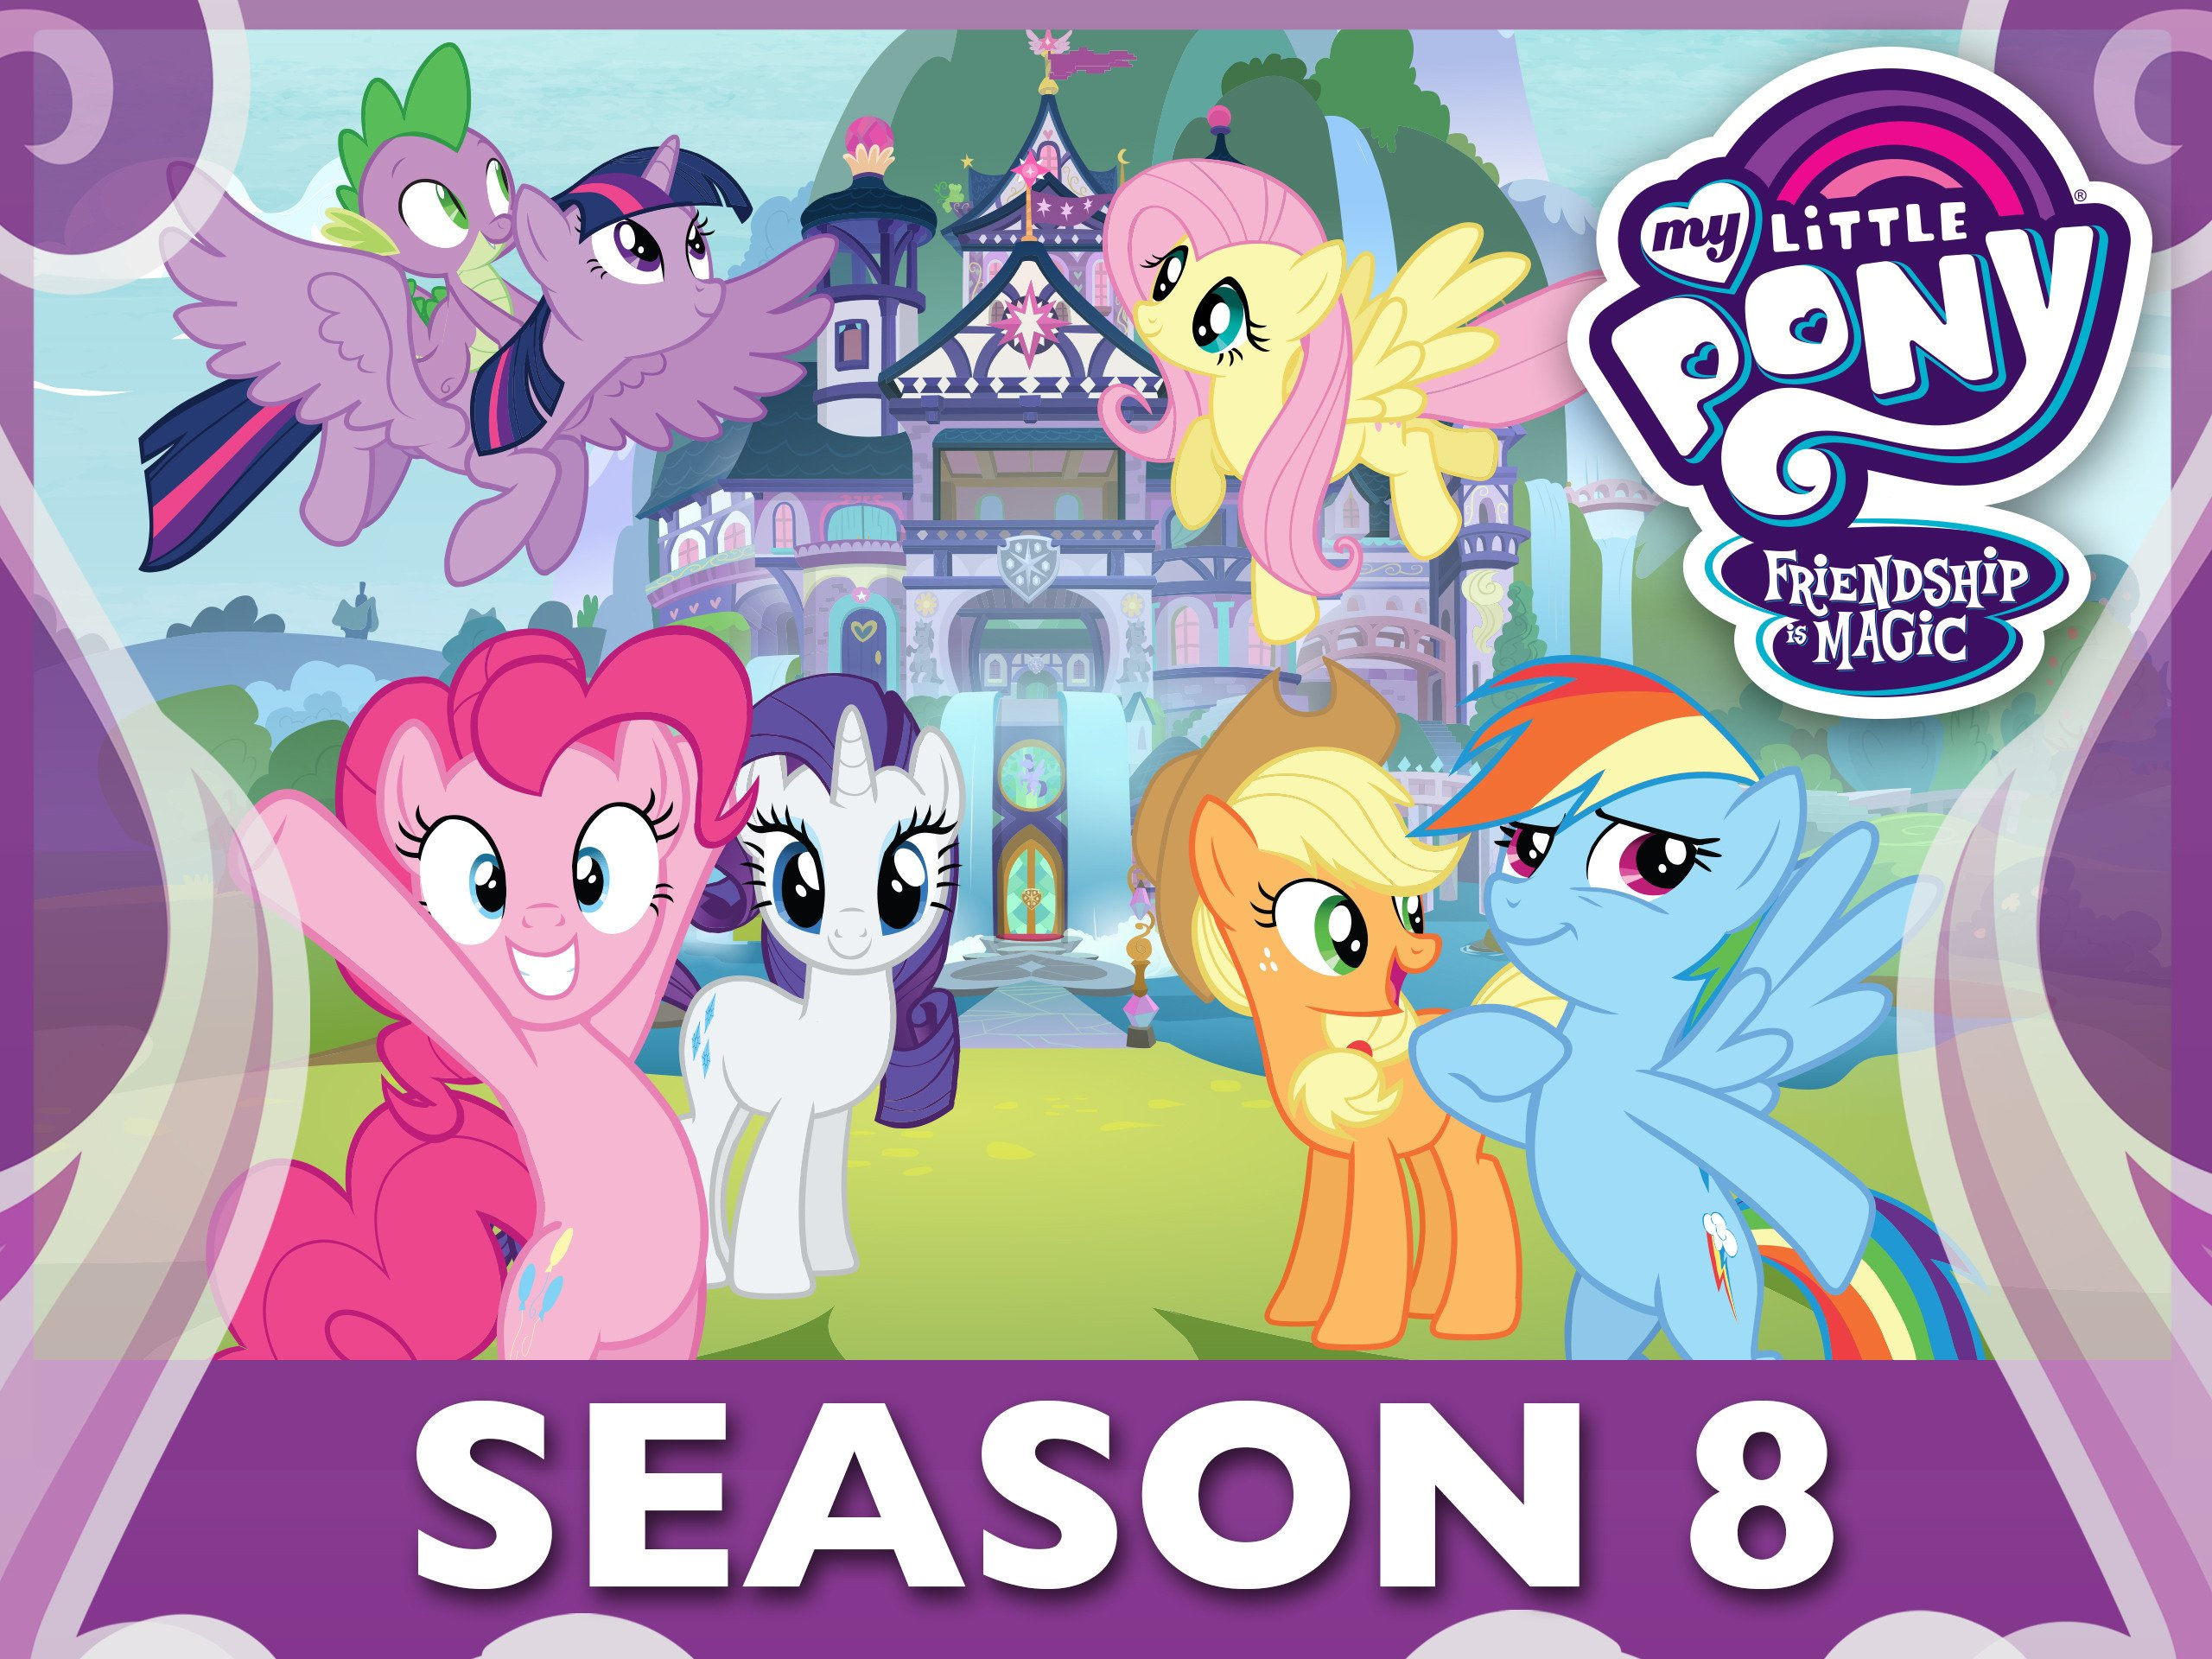 my little pony friendship is magic episode 12 season 3